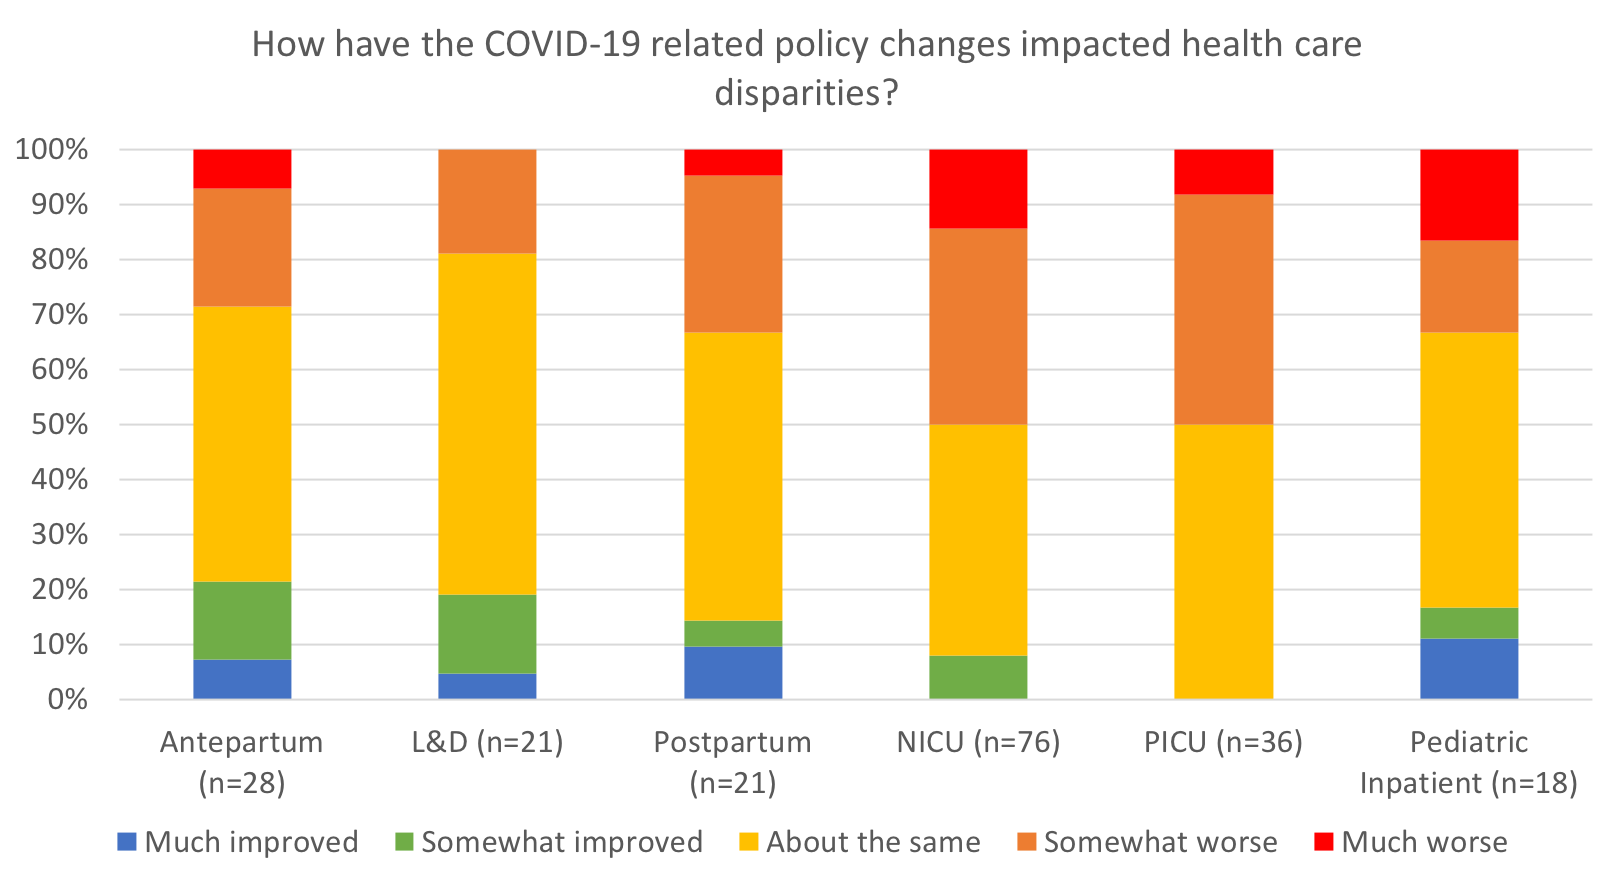 How have the COVID-19 related policy changes impacted health care disparities?